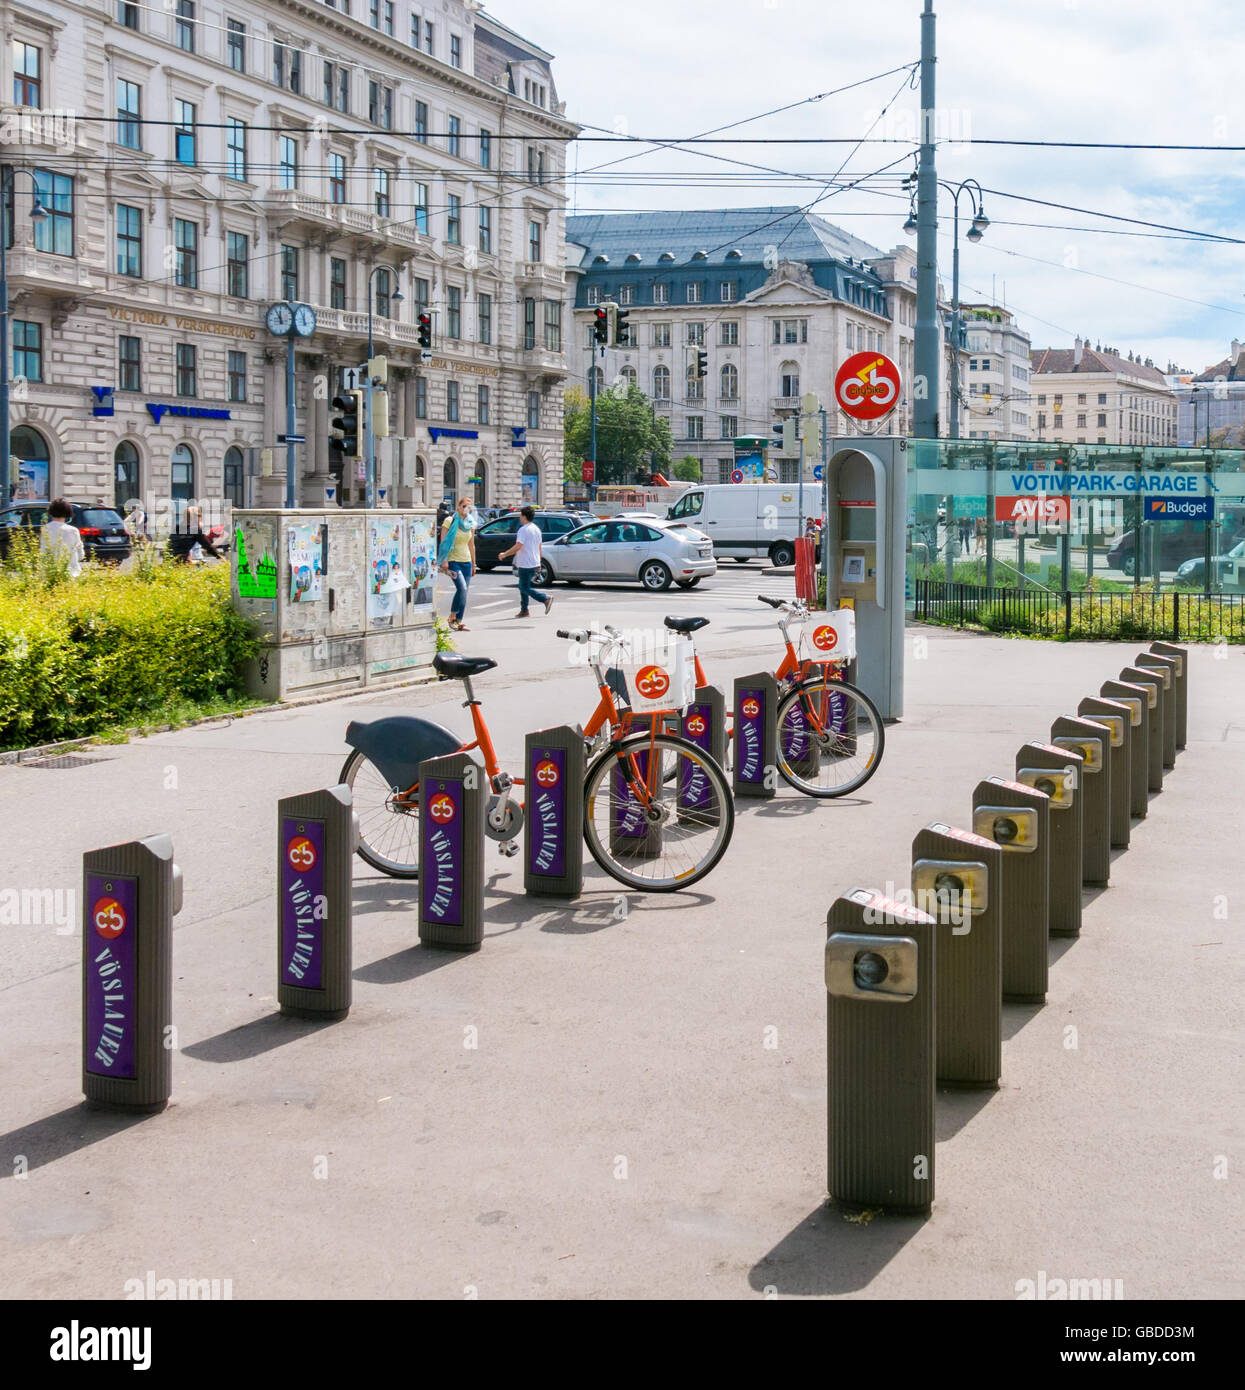 Schottenring Ringstrasse near Sigmund Freud Park with citybike station, people and traffic in Vienna, Austria - Stock Image